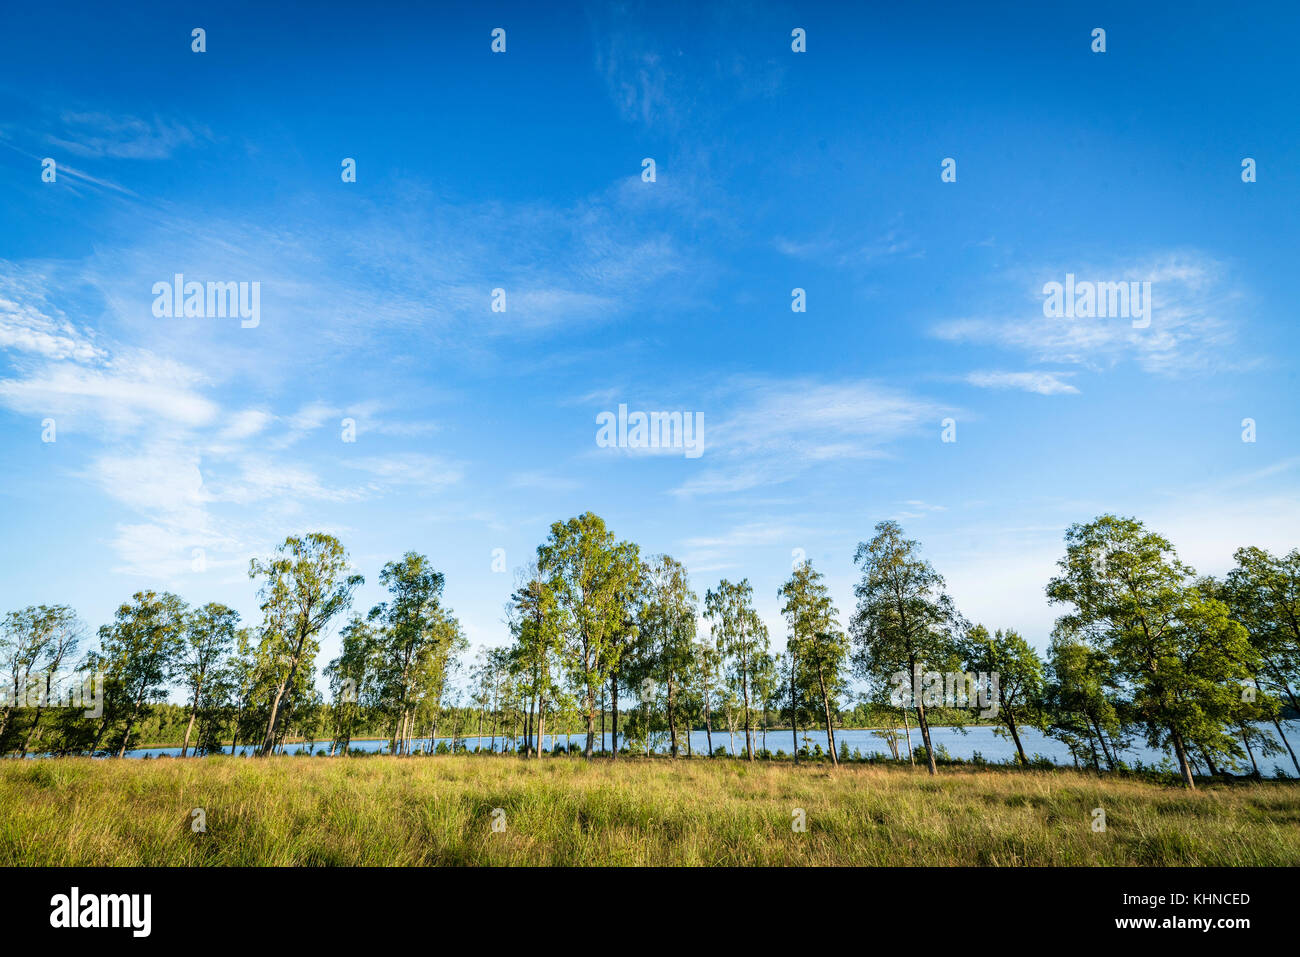 Trees in front of a lake in the summer on a meadow with green grass - Stock Image